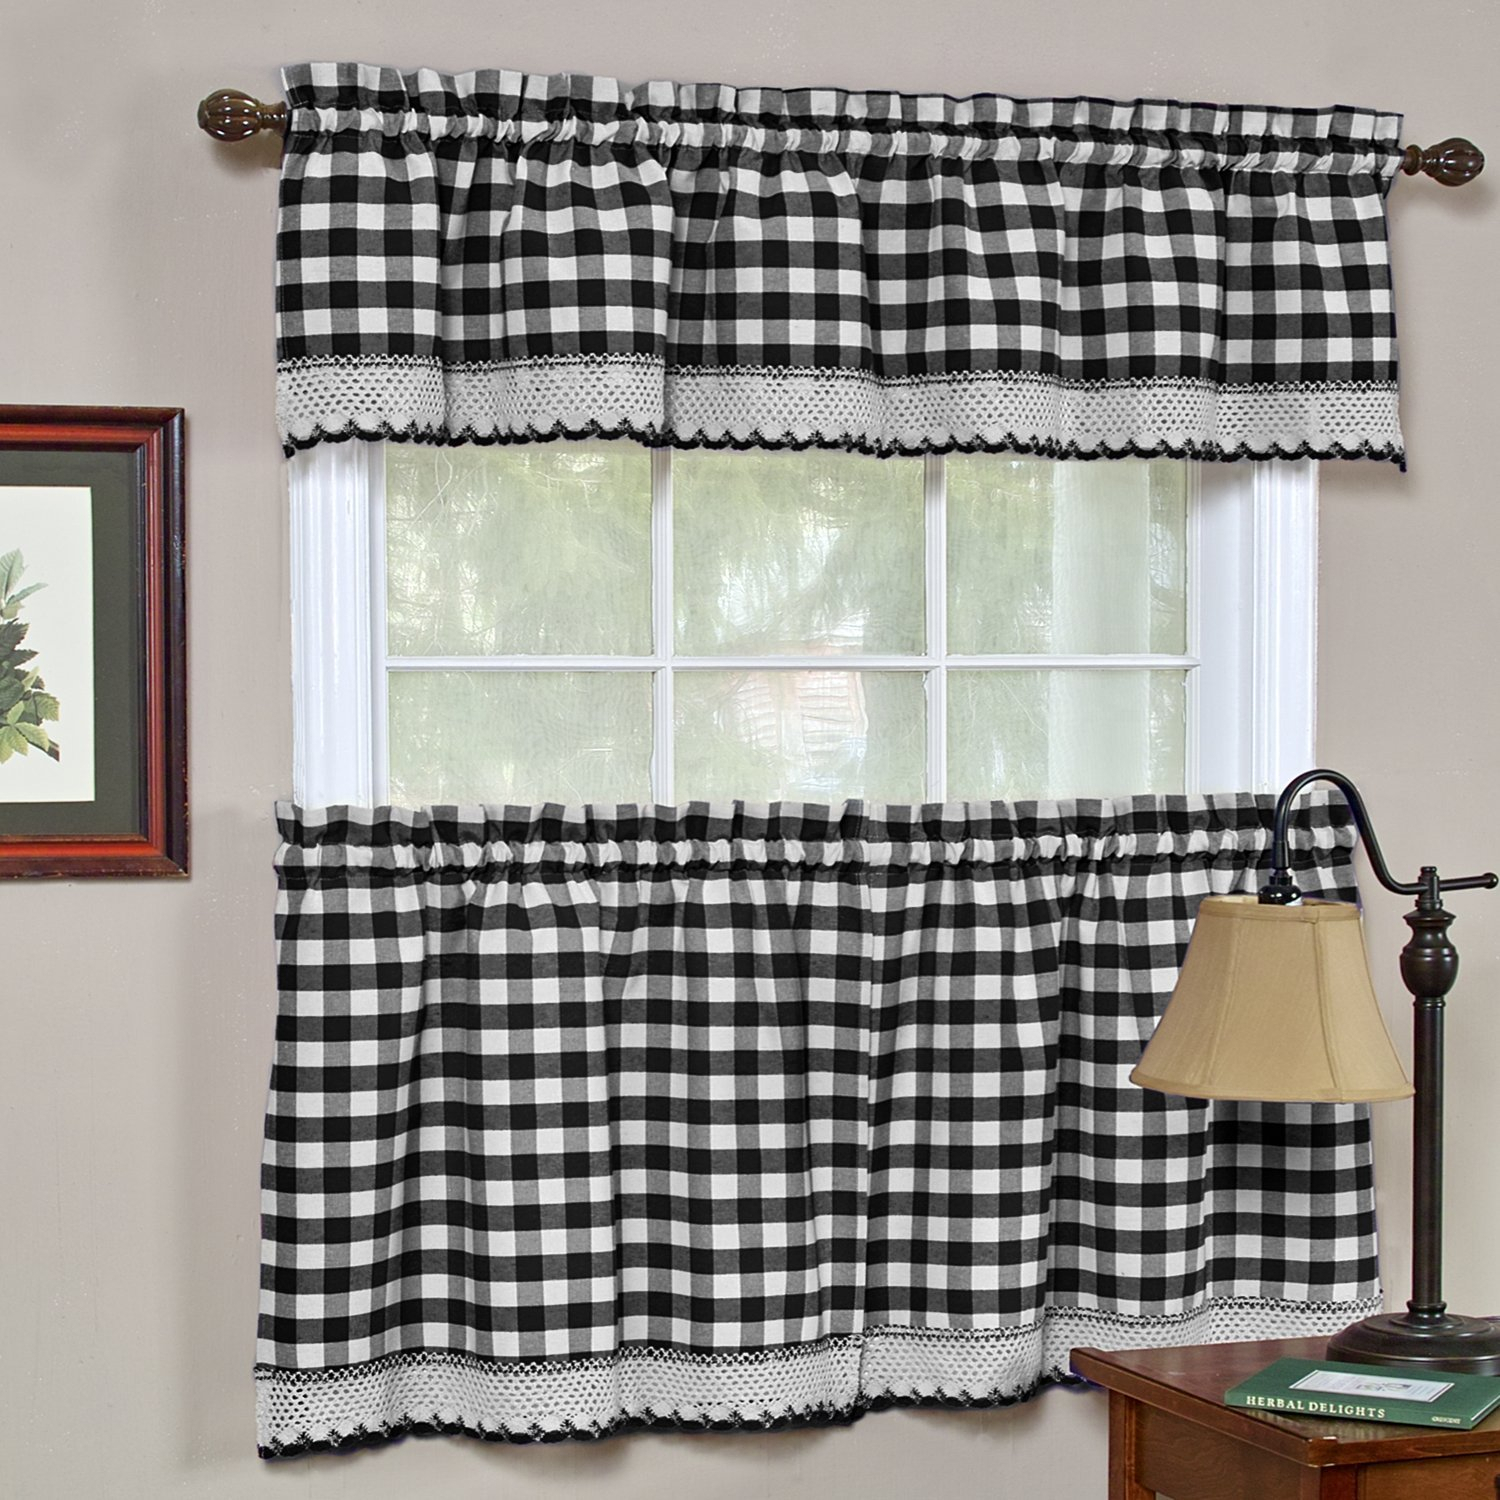 Best Ever Black And White Tier Curtains – Freshomedaily Inside Bermuda Ruffle Kitchen Curtain Tier Sets (View 11 of 20)